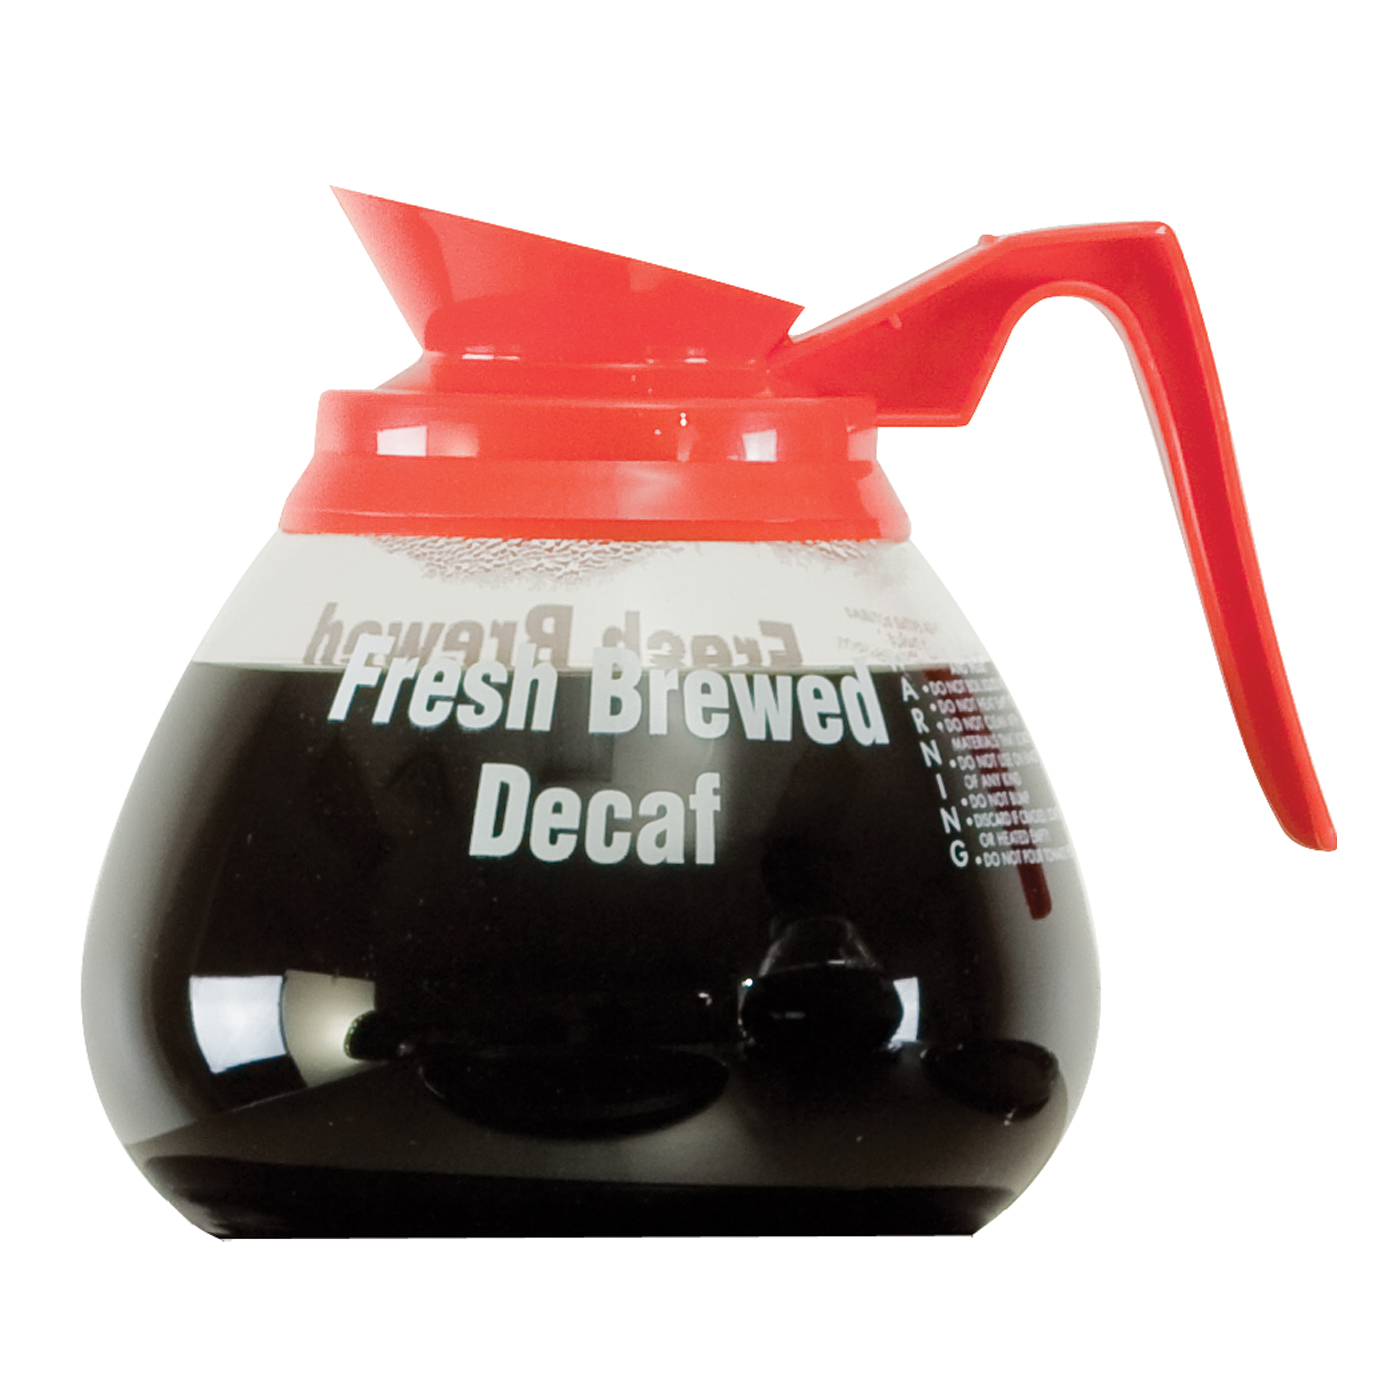 Grindmaster-Cecilware 98006 coffee decanter